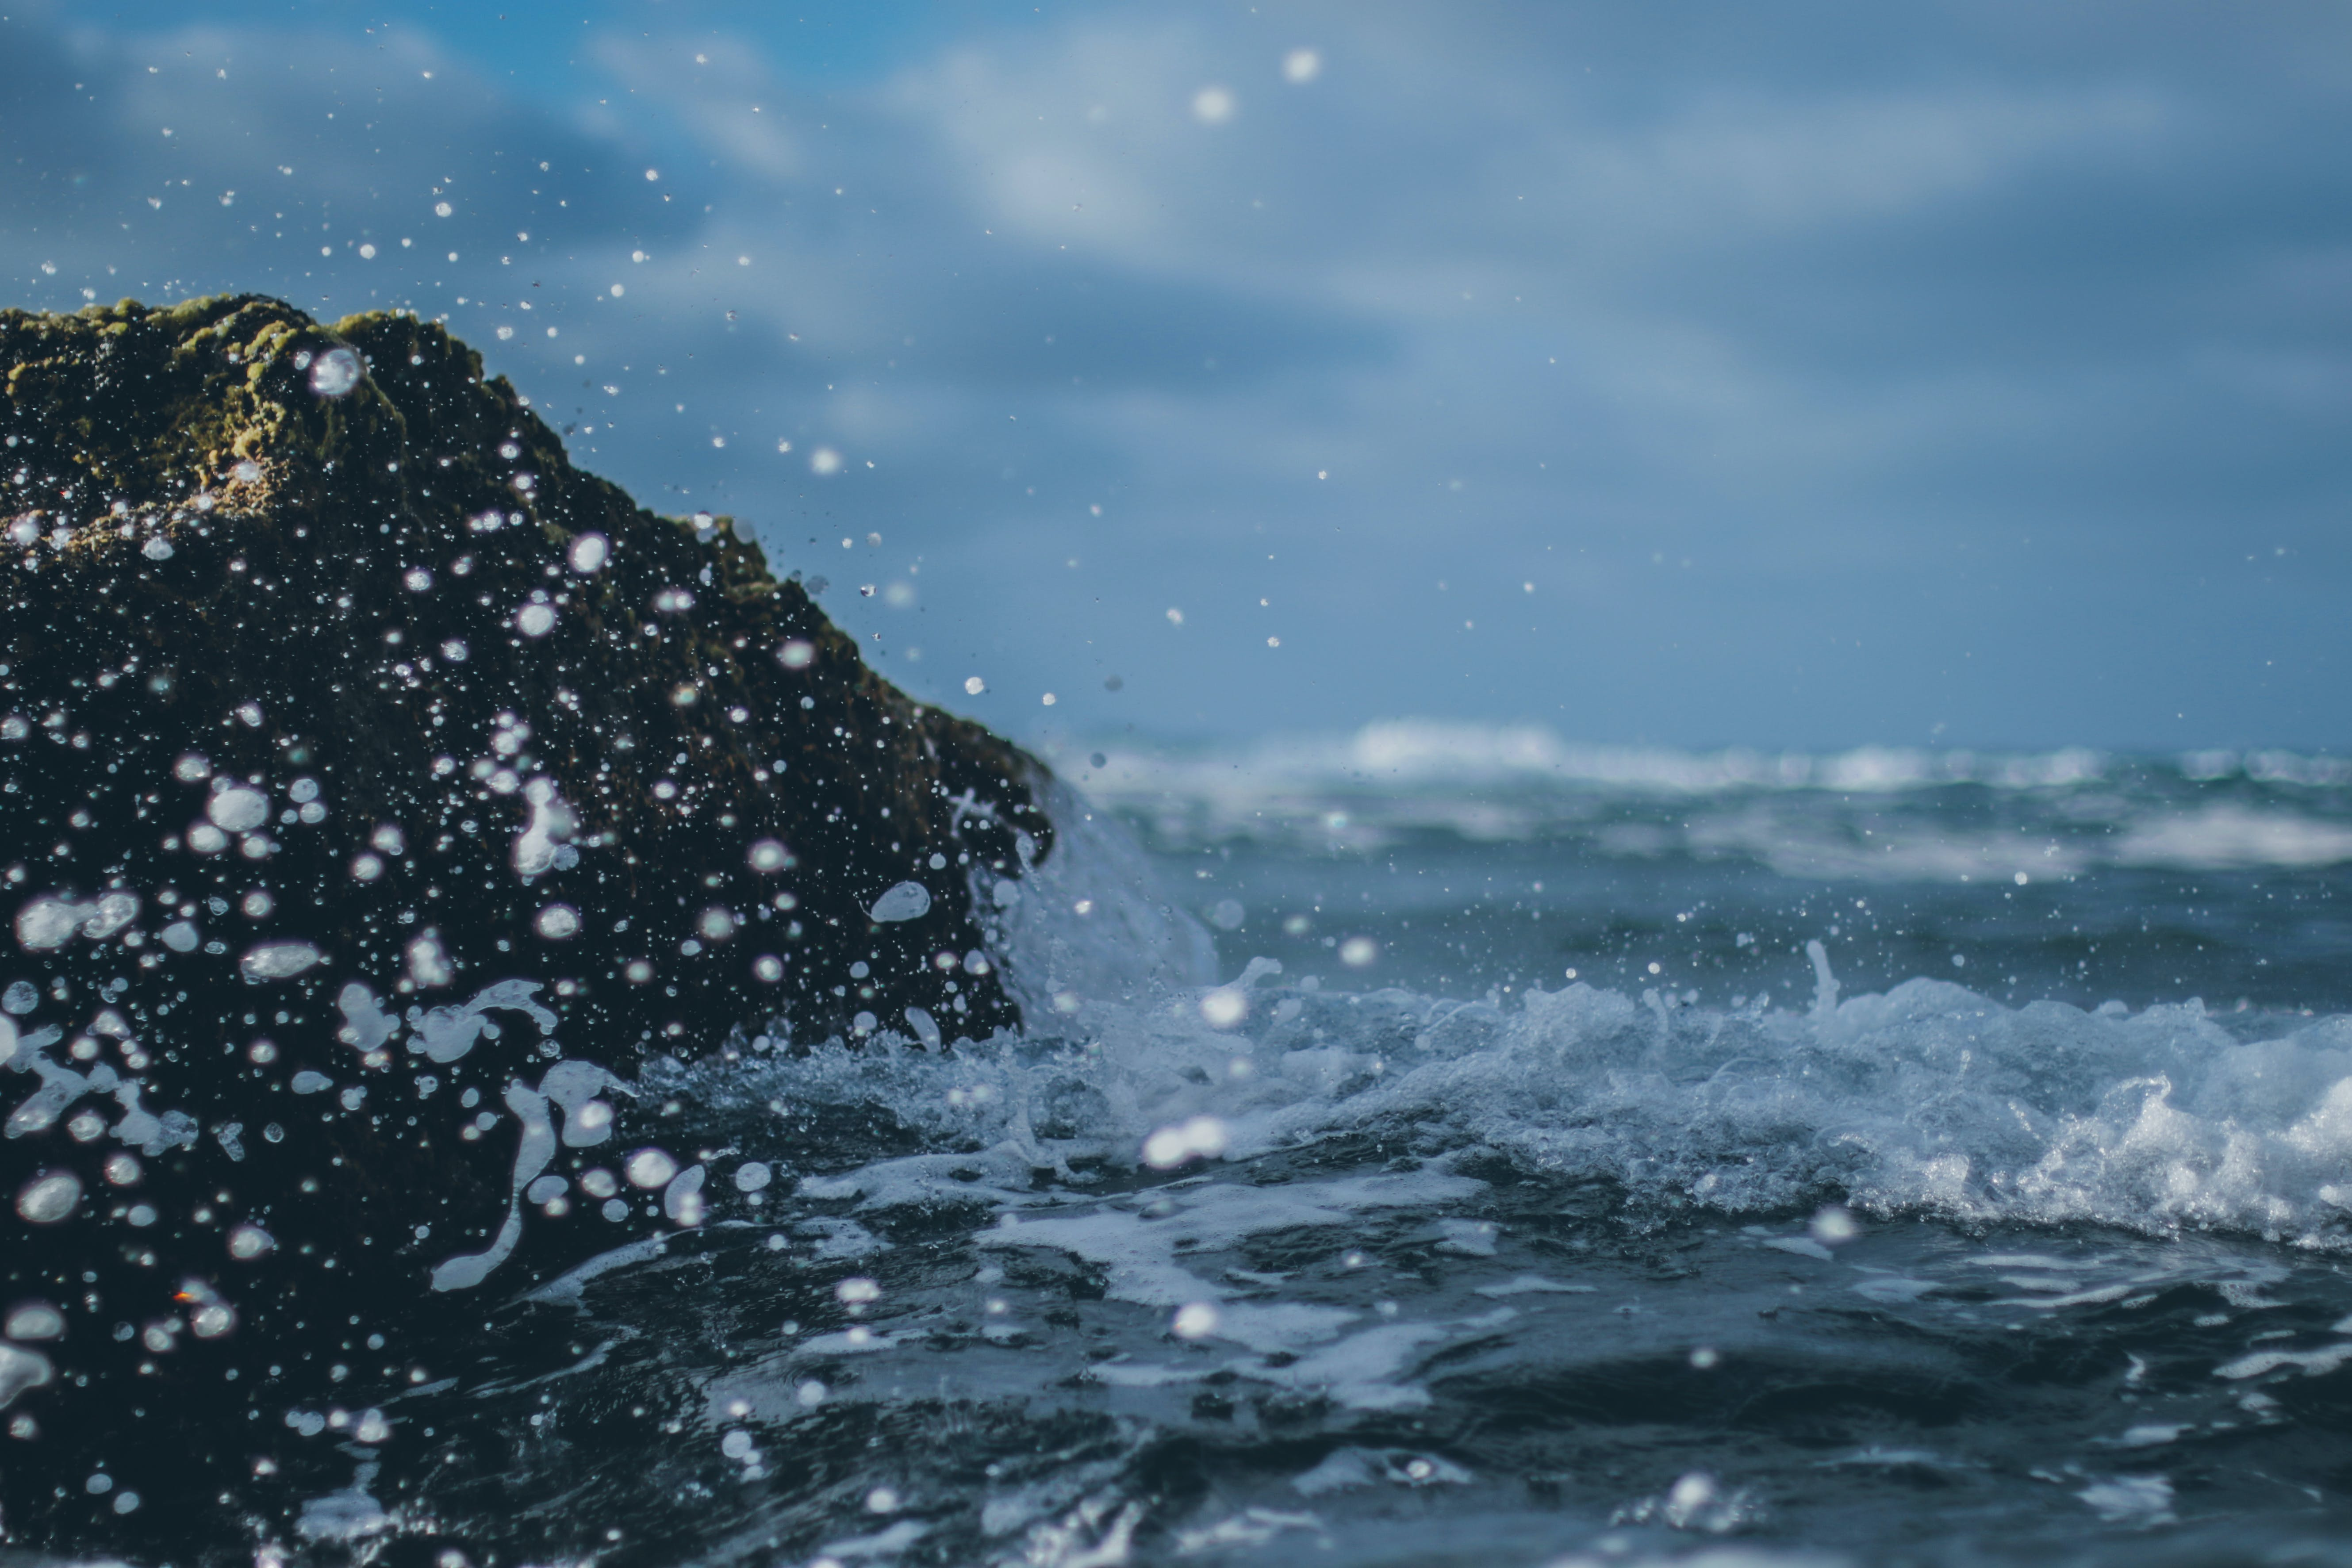 Sea Splashing on Rock